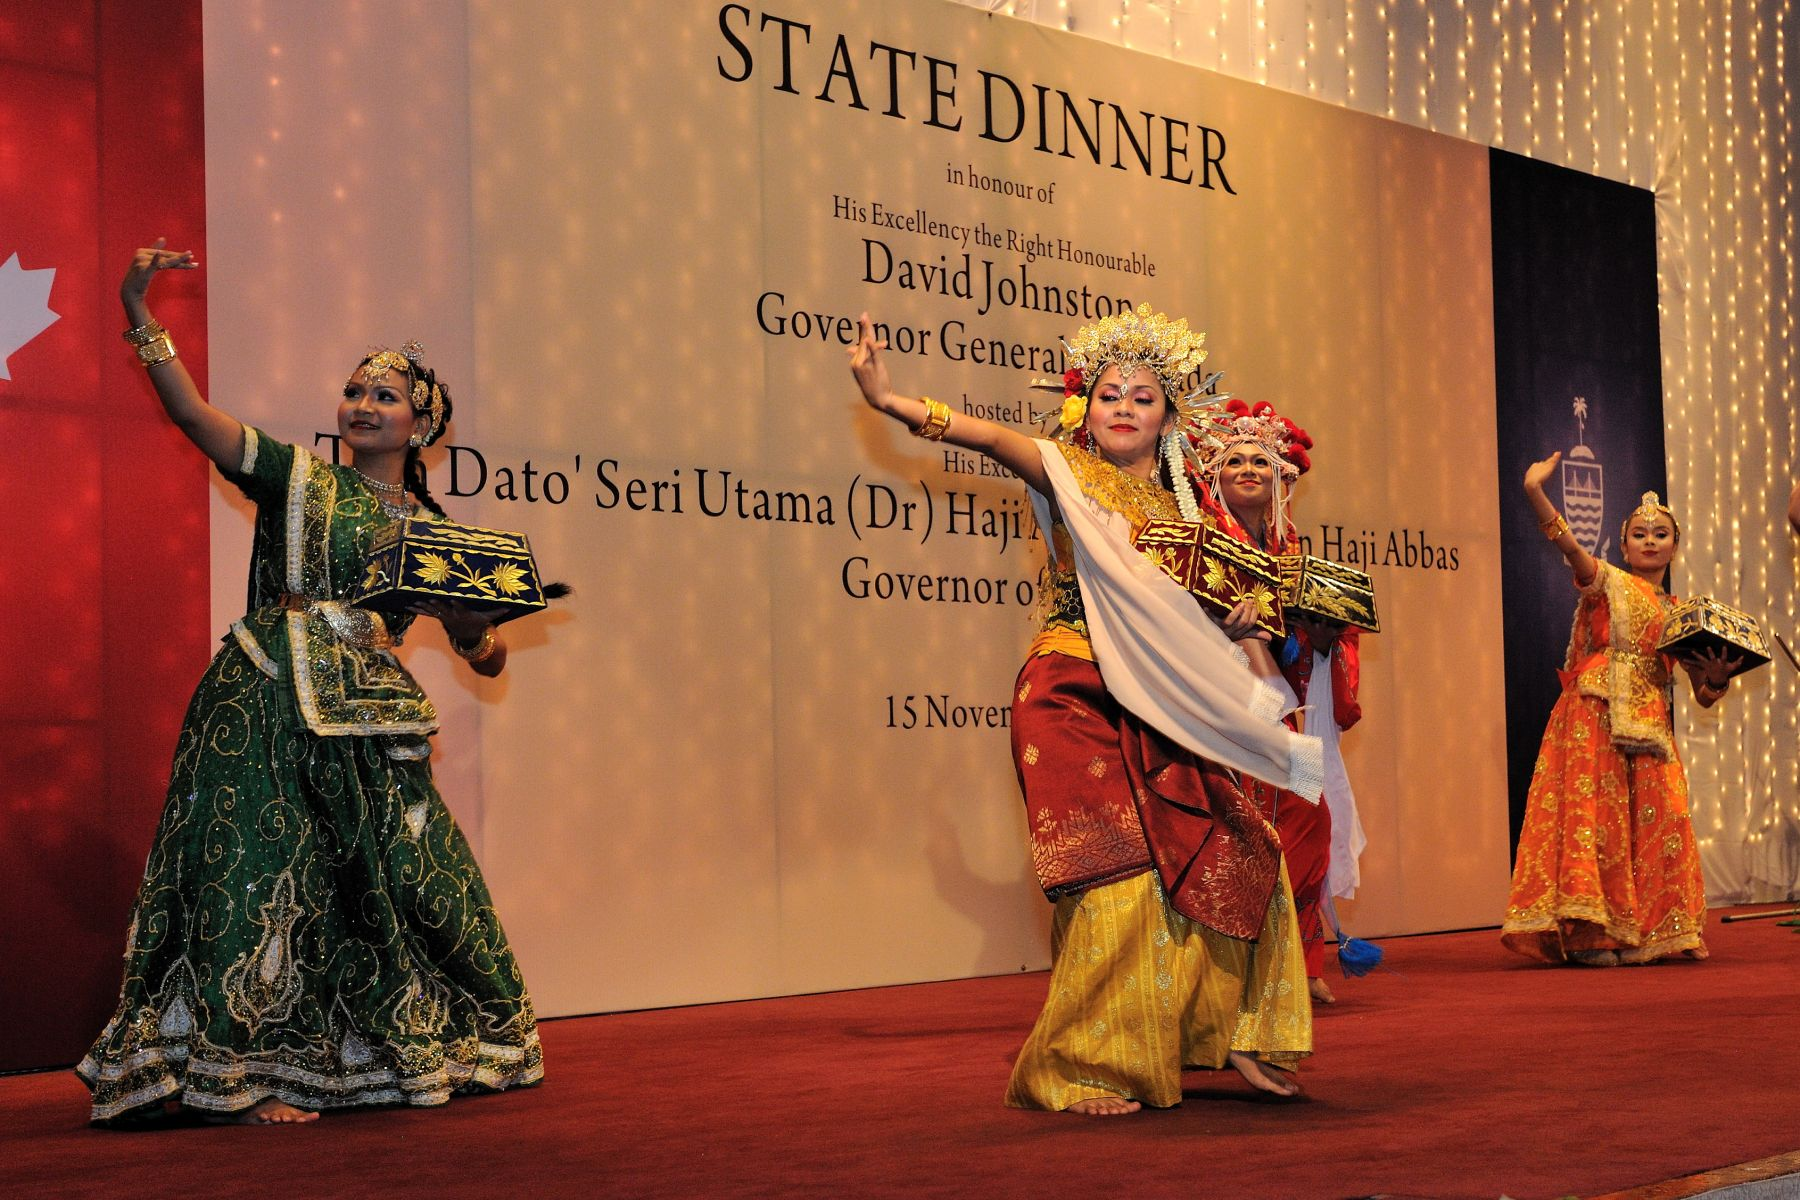 Tun Dato' Seri Utama Abdul Rahman Abbas, Governor of Penang, hosted a dinner in honour of His Excellency's visit to the city of Penang. During the dinner, invited guests were treated to a performance by traditional Malaysian dancers.